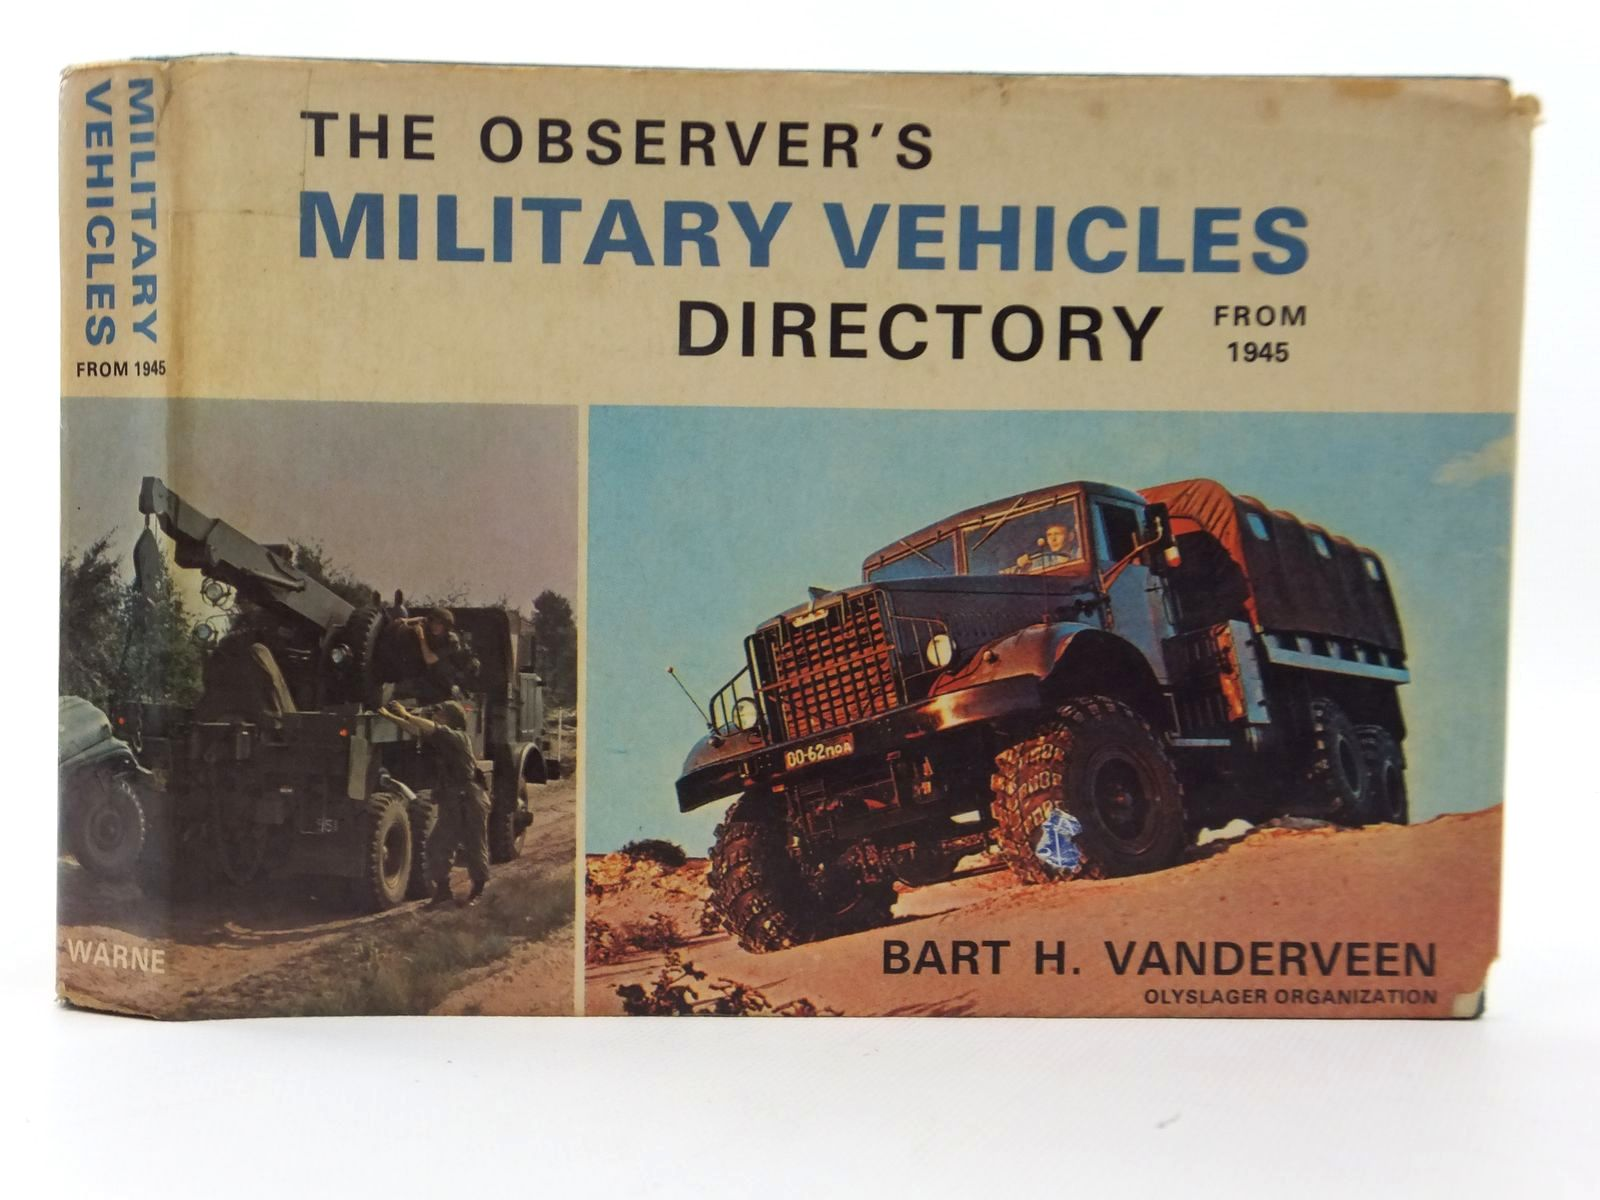 Photo of THE OBSERVER'S MILITARY VEHICLES DIRECTORY FROM 1945 written by Vanderveen, Bart H. published by Frederick Warne & Co Ltd. (STOCK CODE: 1609616)  for sale by Stella & Rose's Books